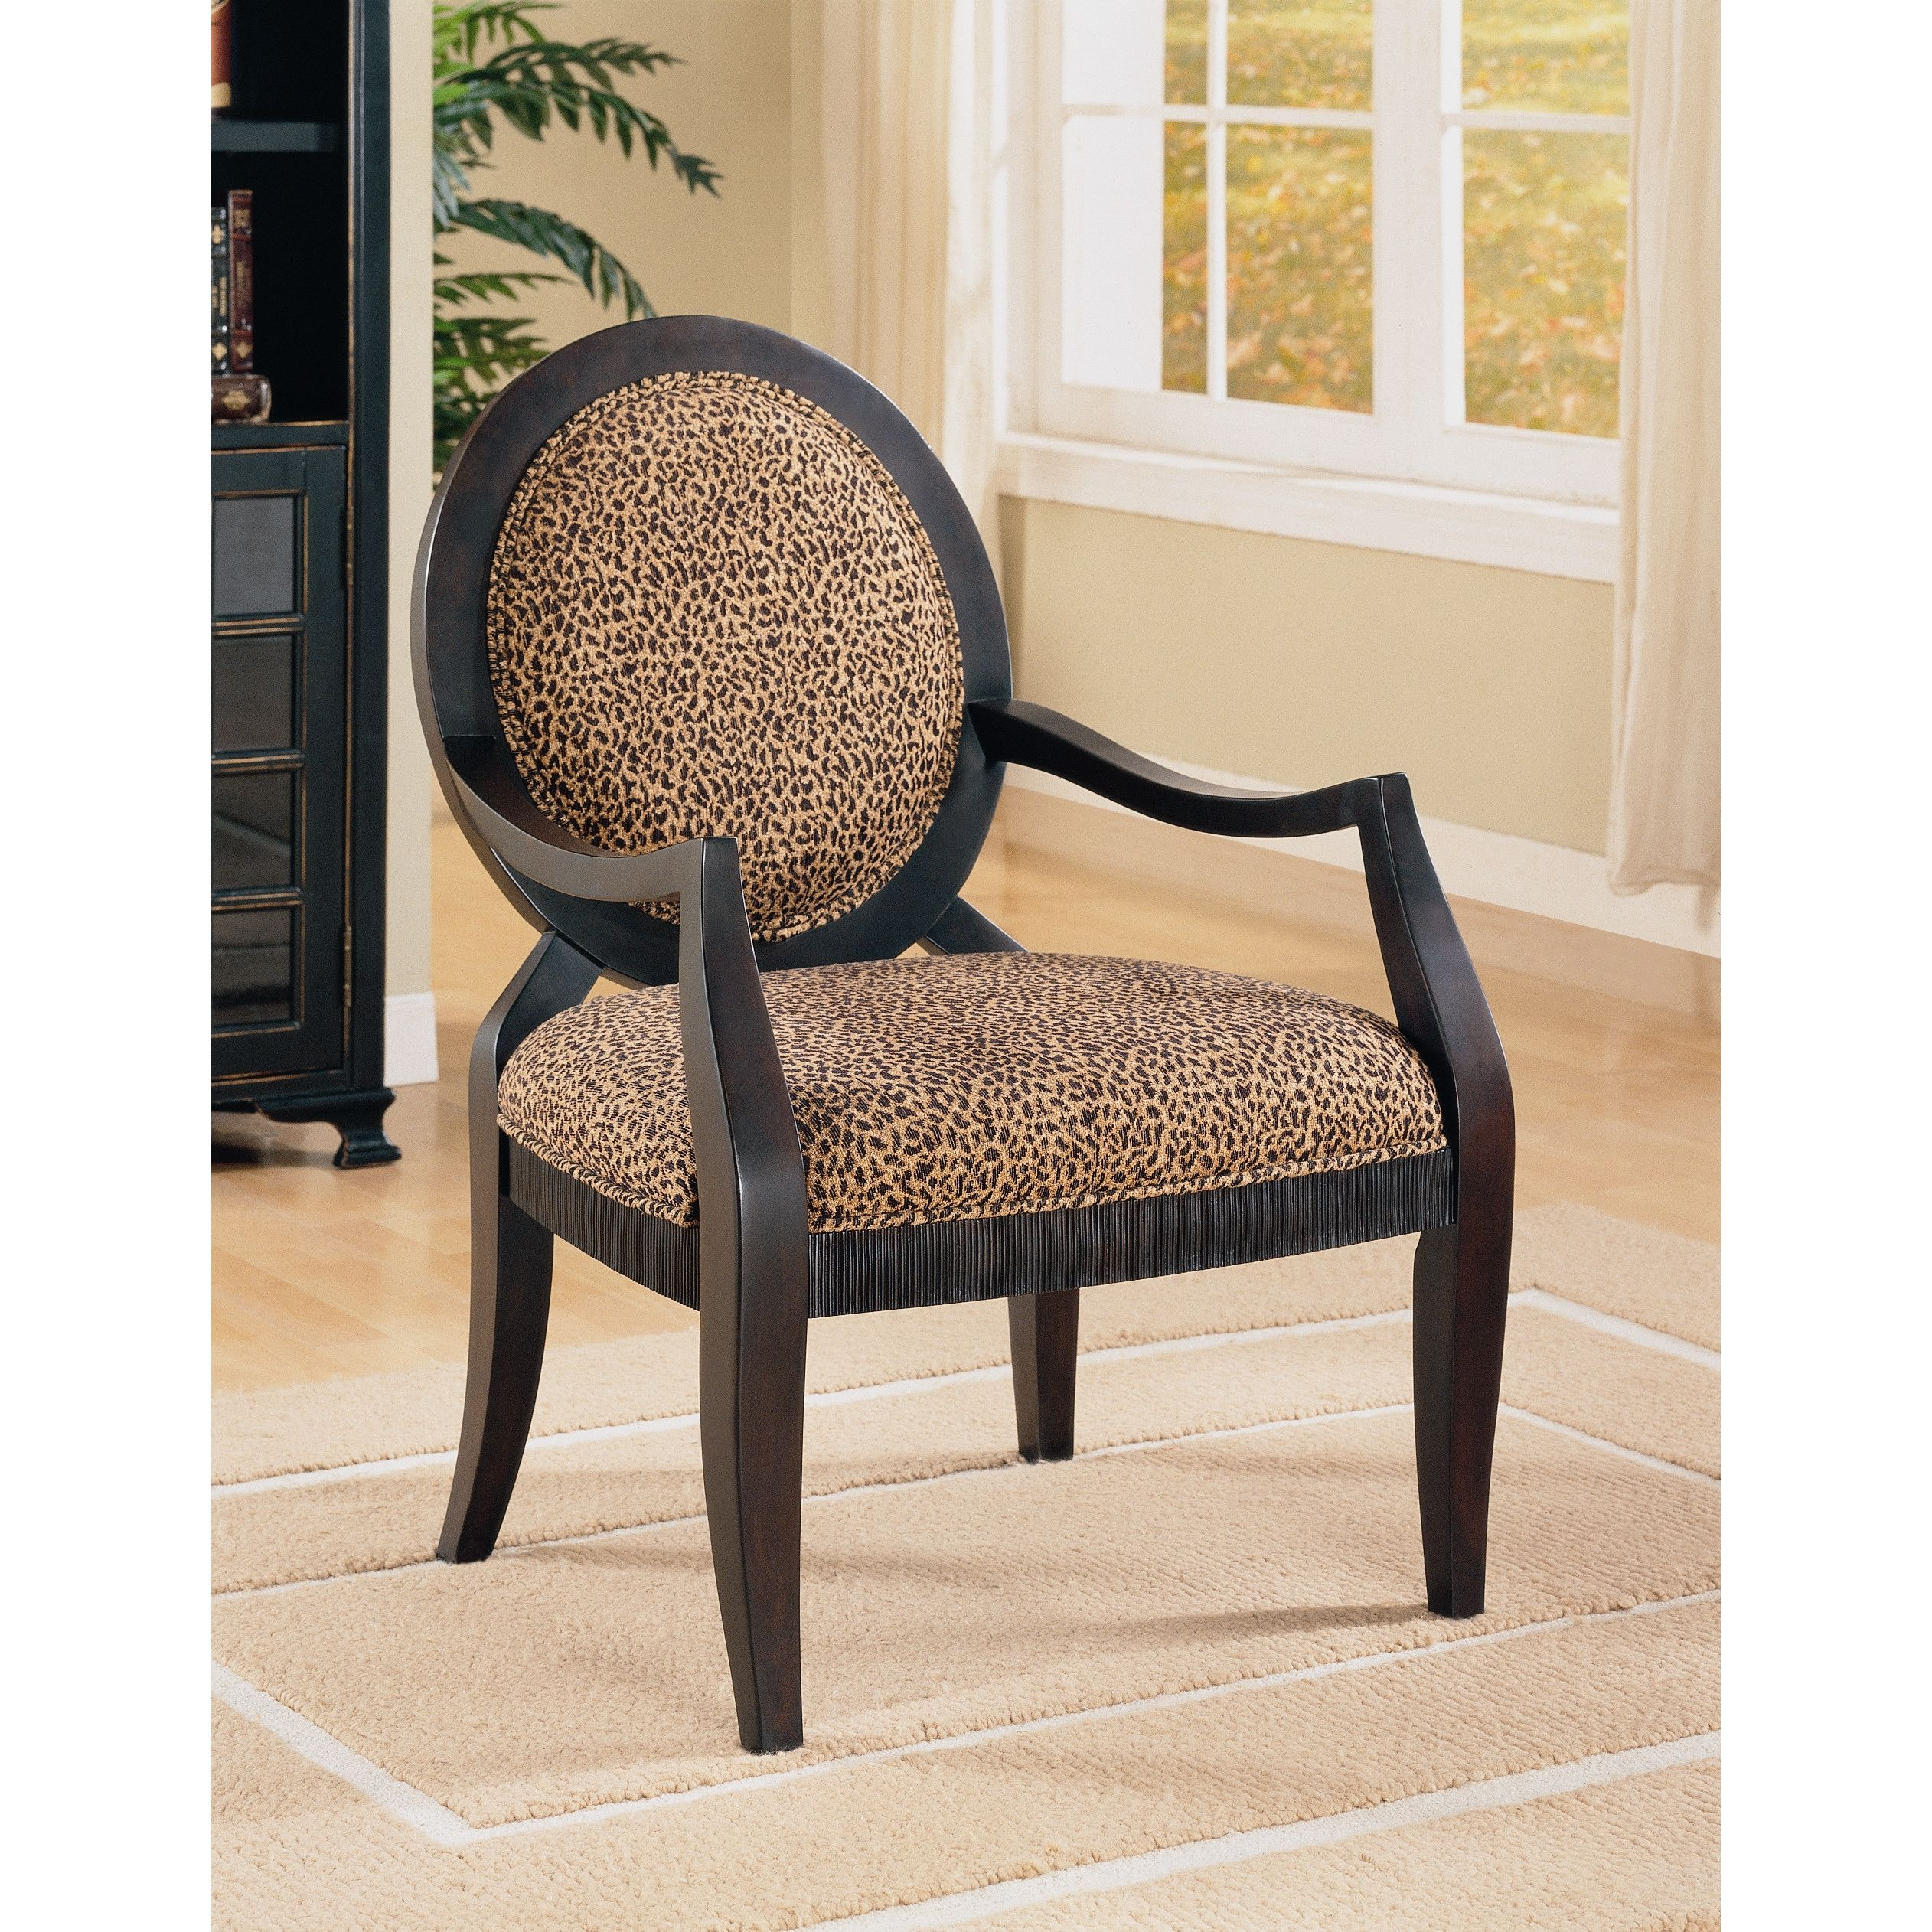 Amazing House Of Hampton Leopard Print Distressed Fabric Arm Chair Gmtry Best Dining Table And Chair Ideas Images Gmtryco